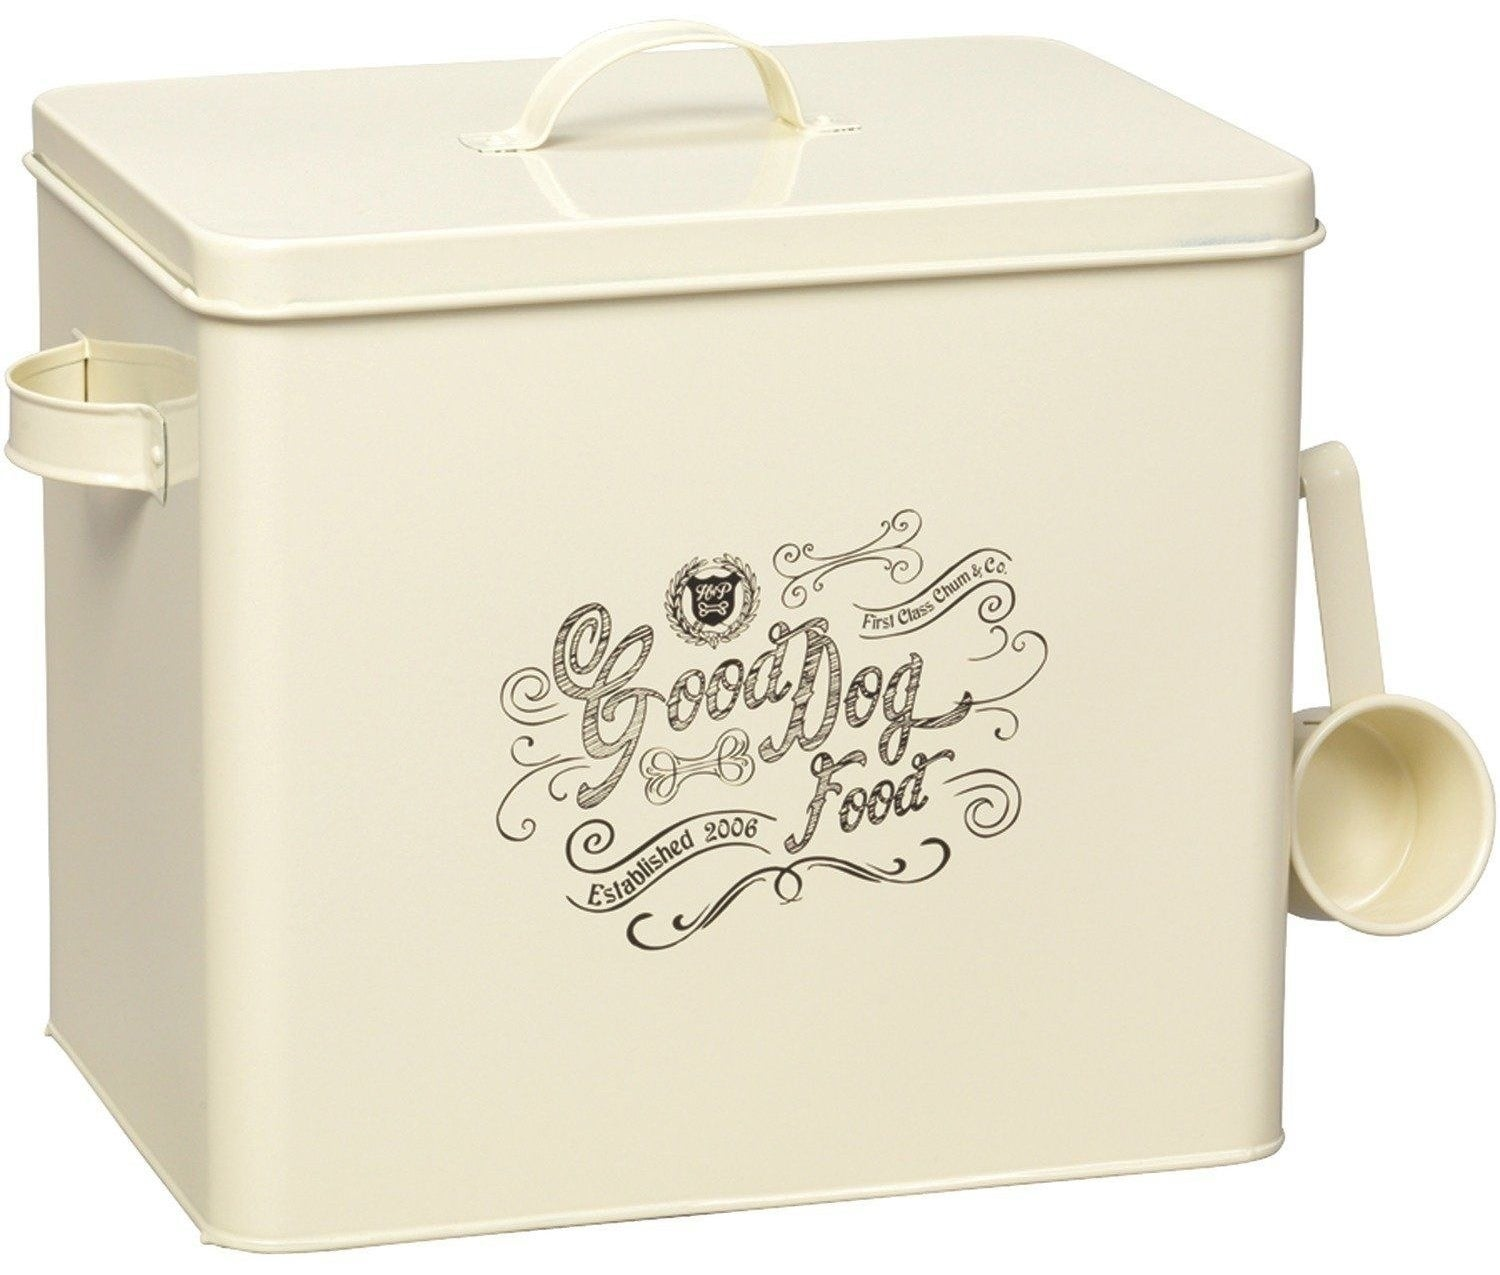 A classic dog food container that has a removable interior to use as separate bowl.